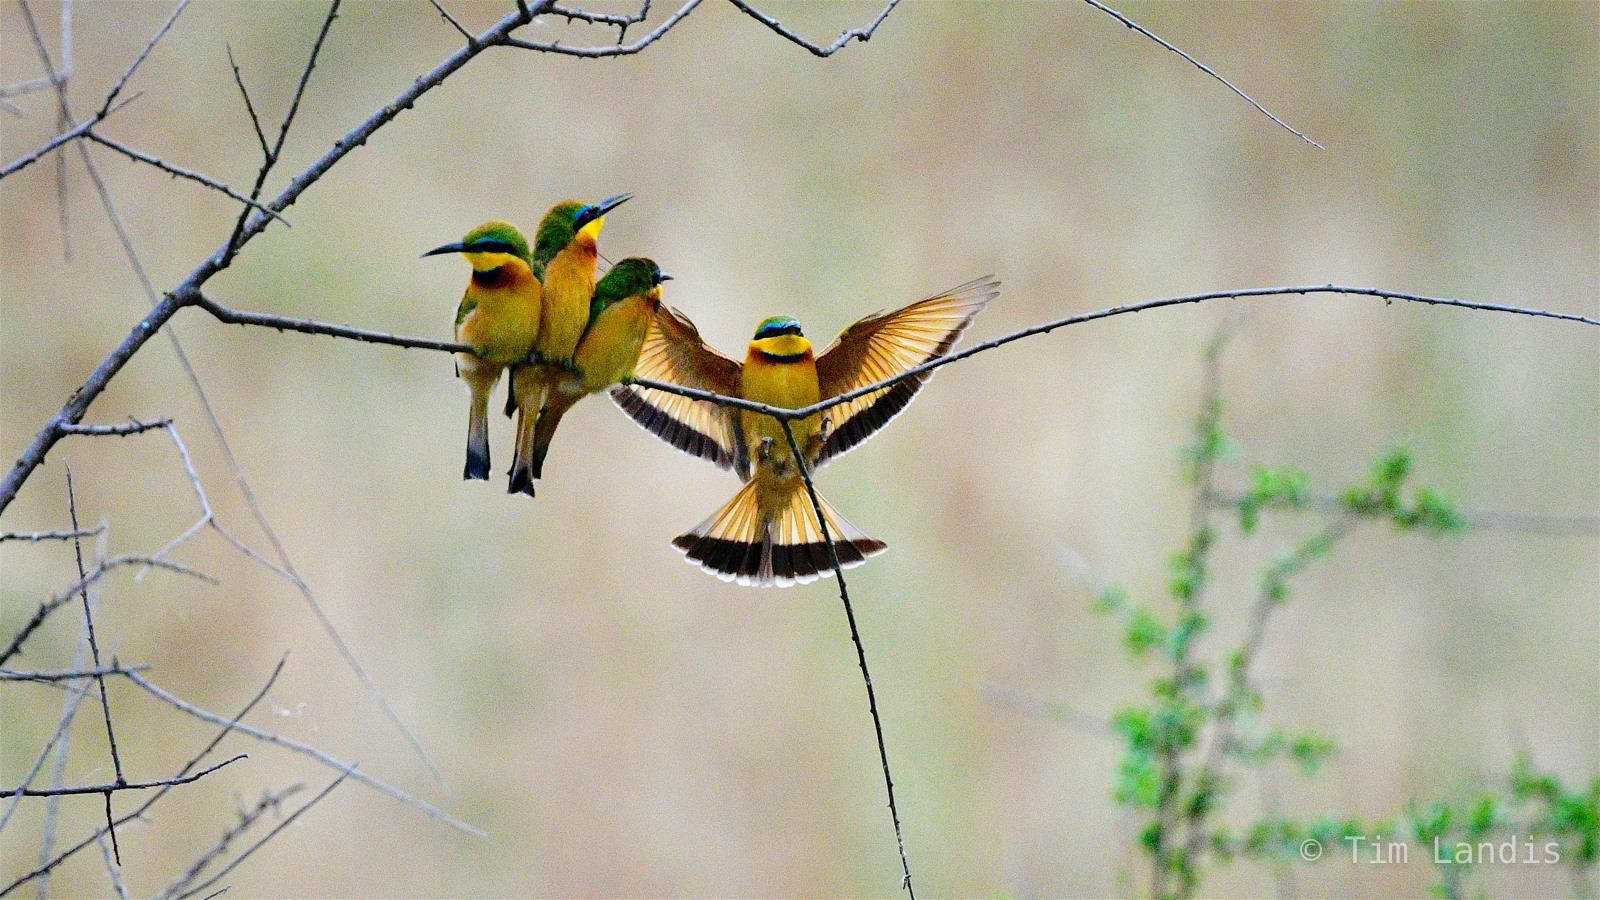 Four Bee eaters on a branch, photo